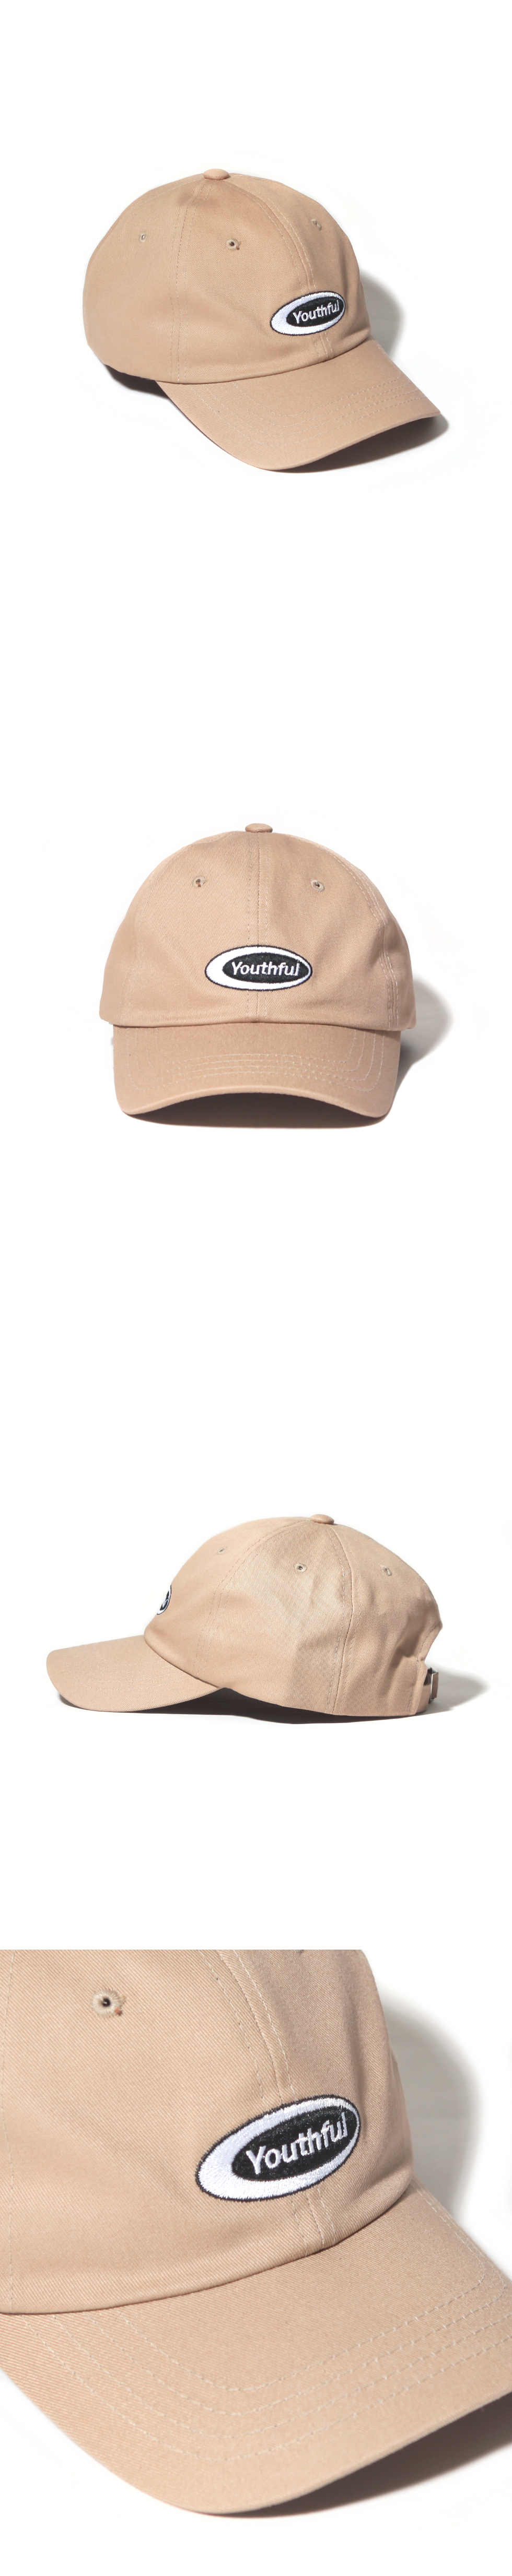 OVAL CURVED CAP-BEIGE